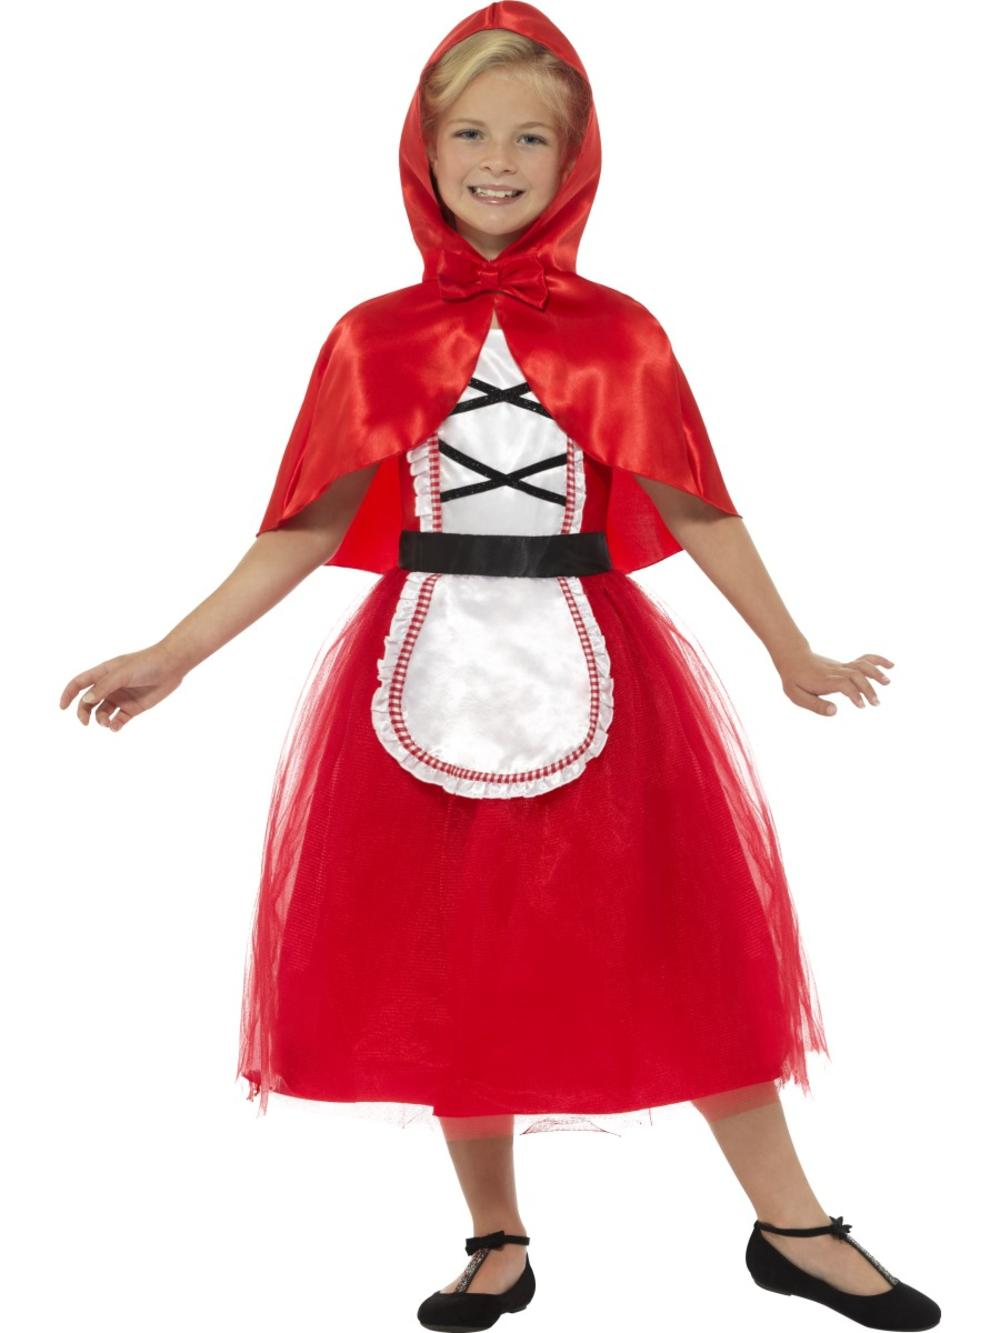 Deluxe Red Riding Hood Girls Fancy Dress Fairy Tale Book Day Childs Kids Costume